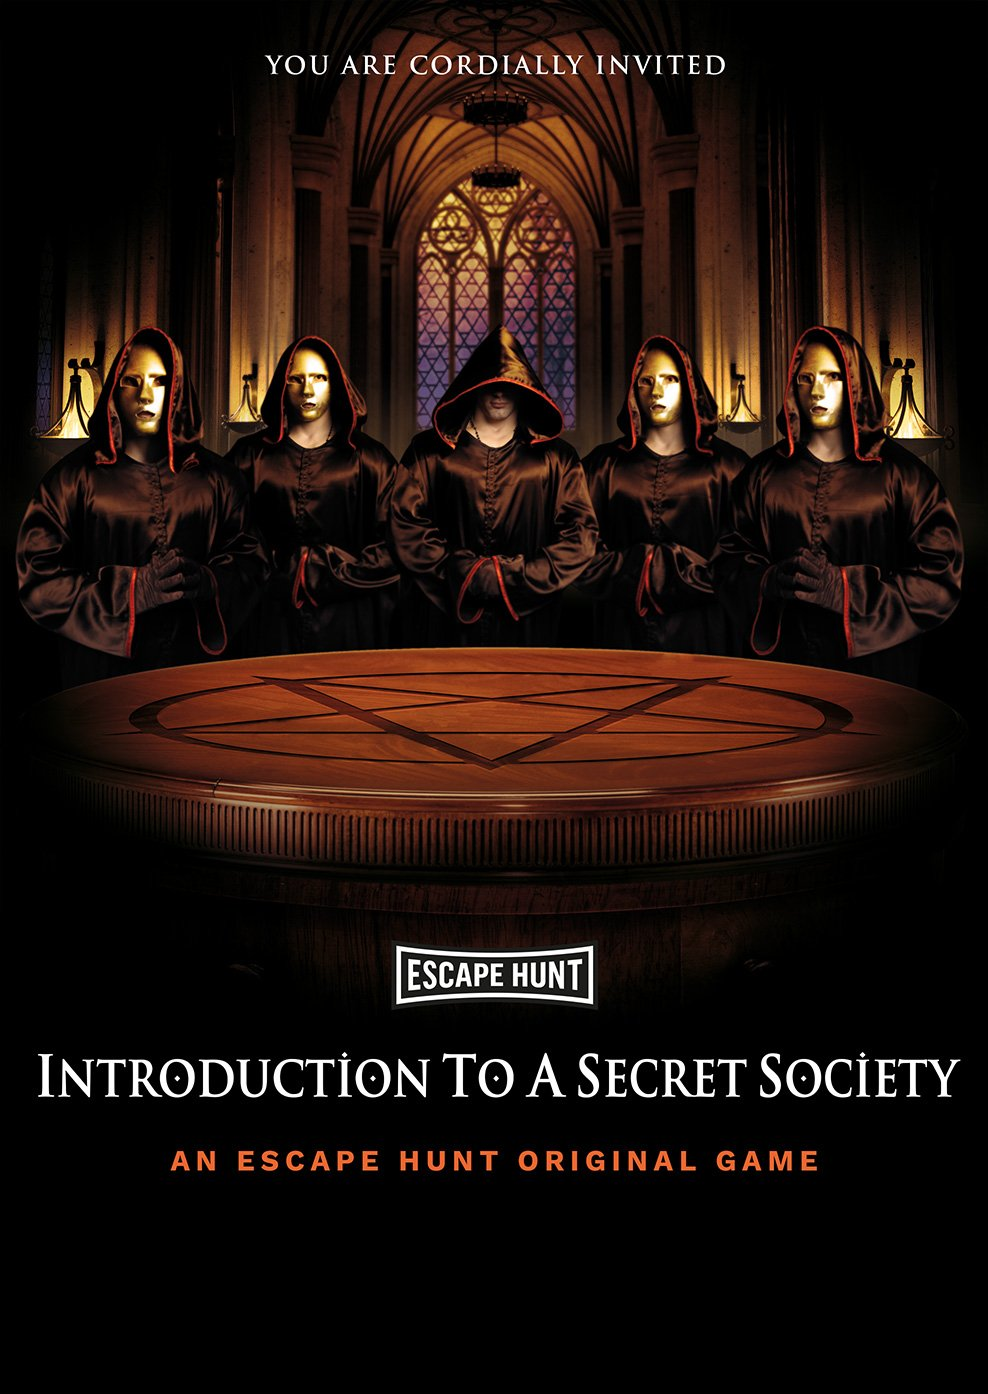 INTRODUCTION TO A SECRET SOCIETY - Live Escape Room Game